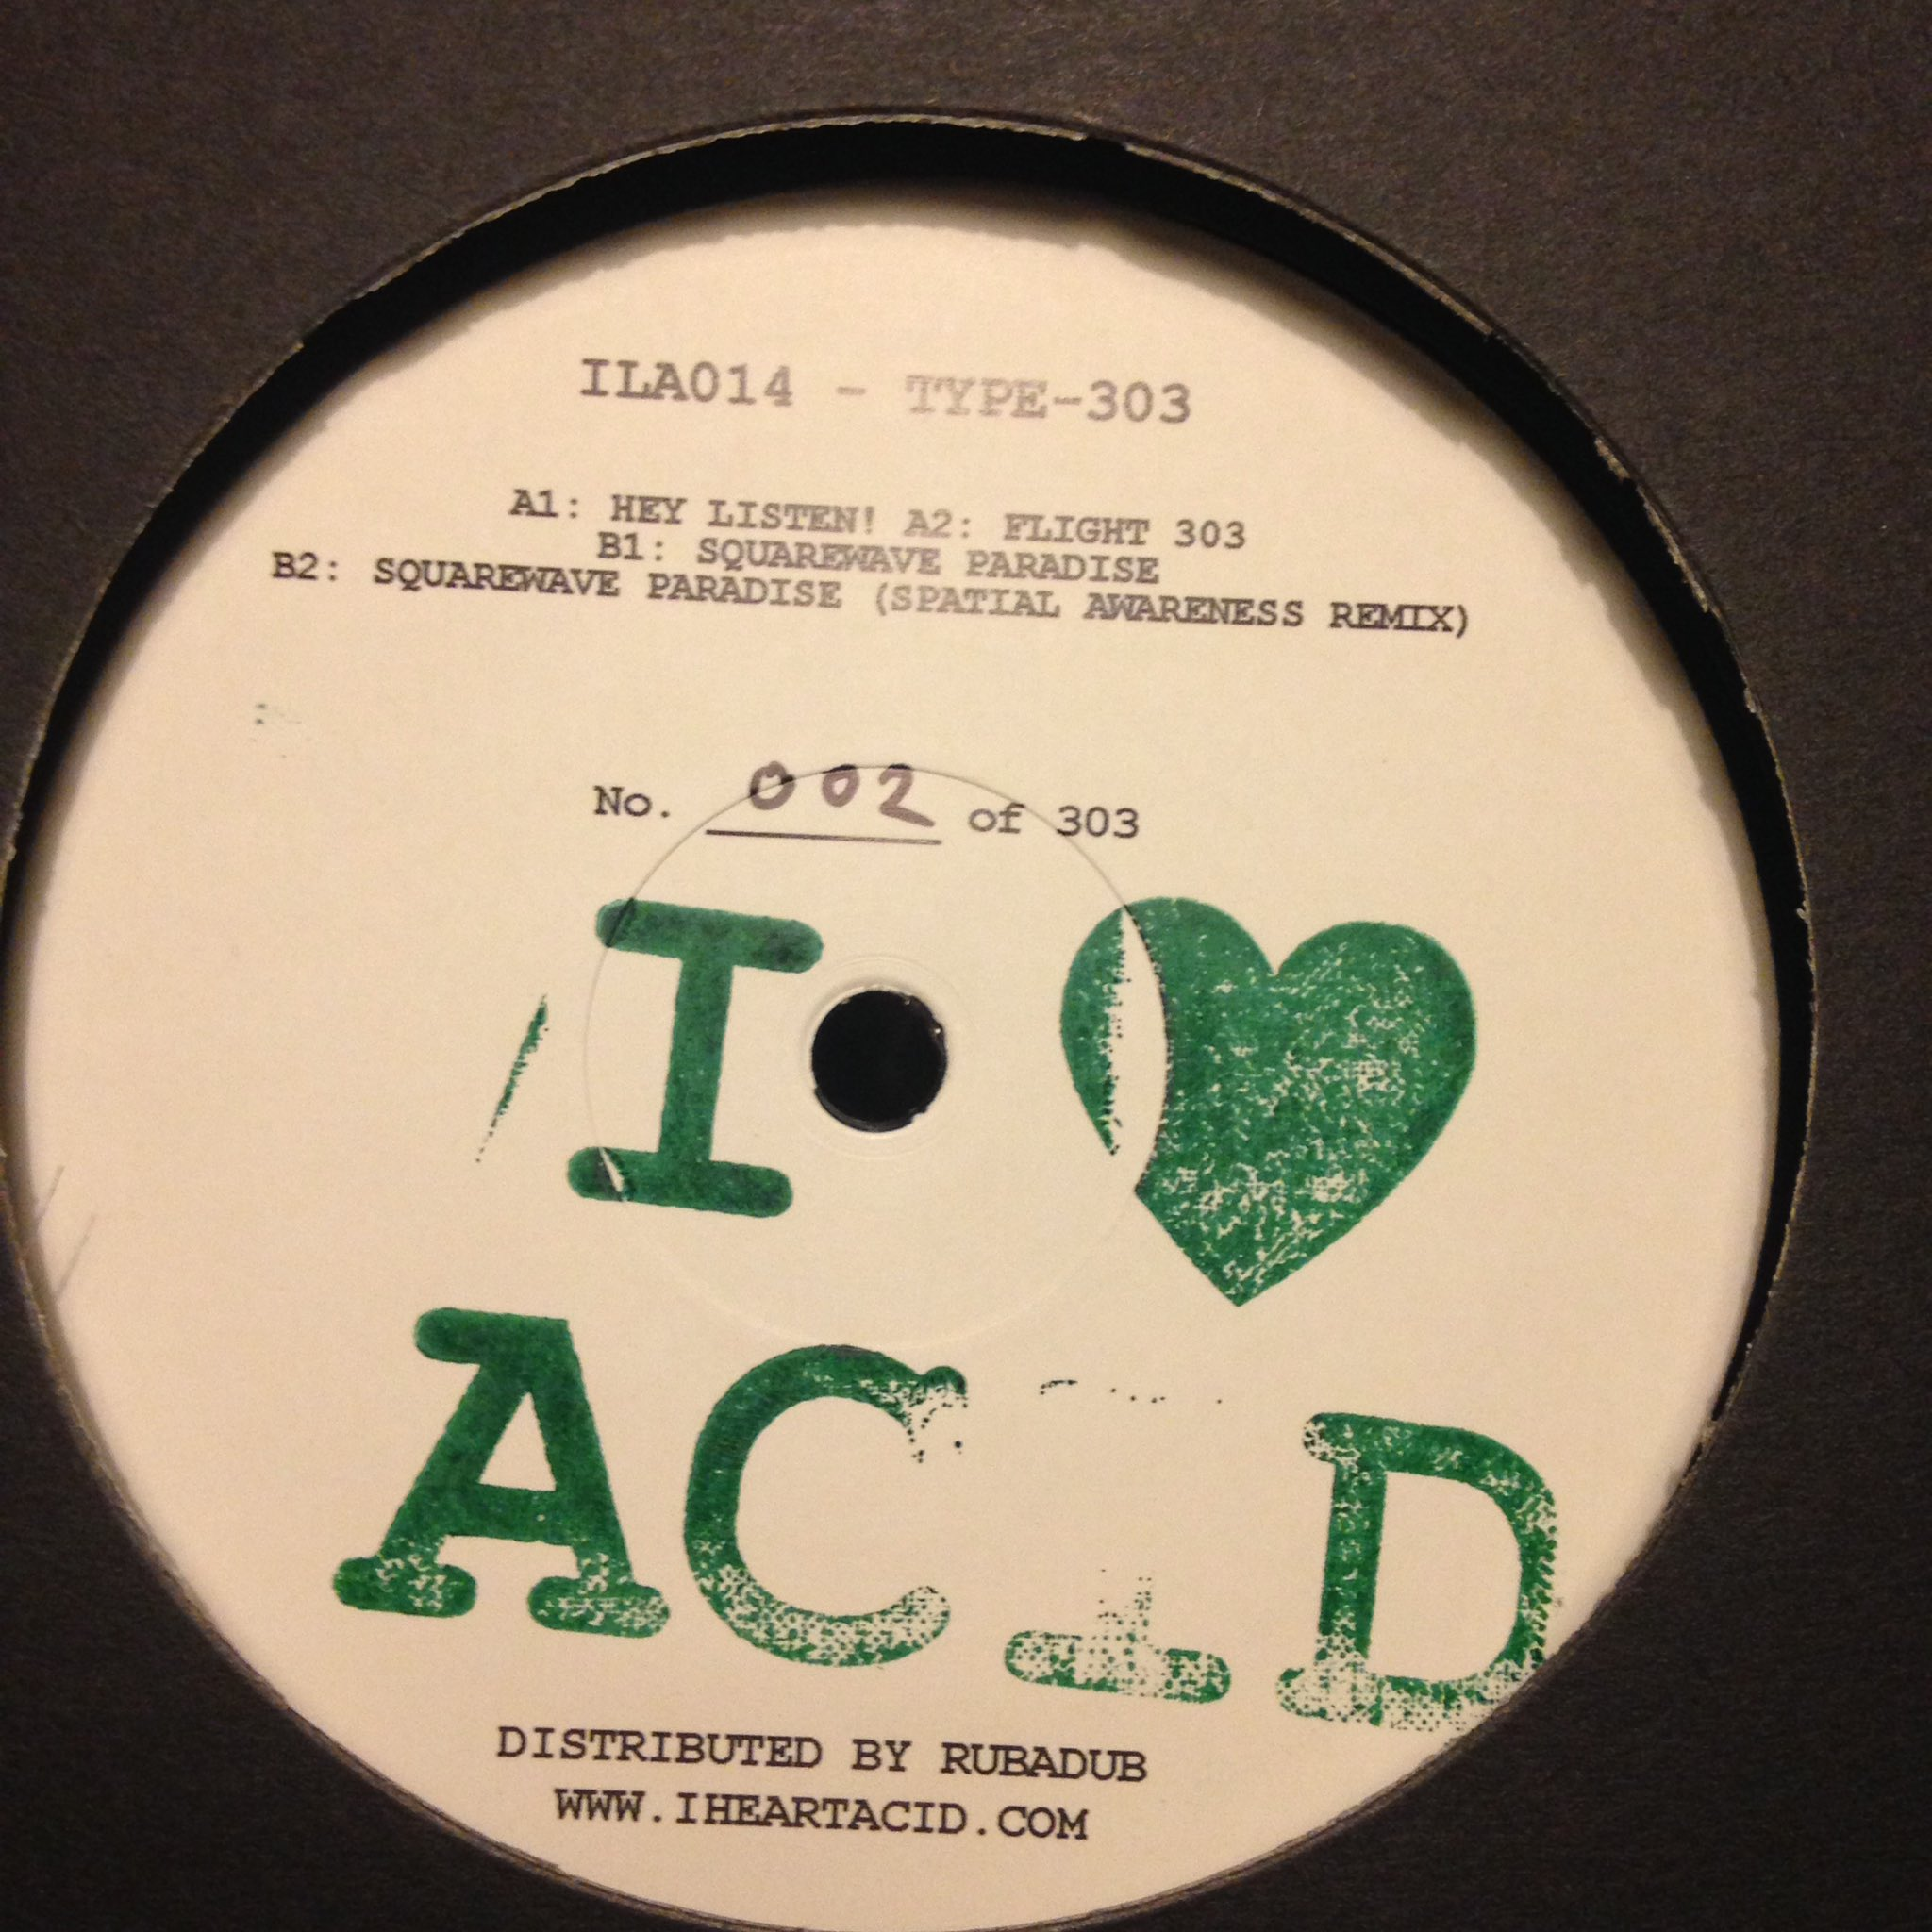 Type-303/I LOVE ACID 014 12""